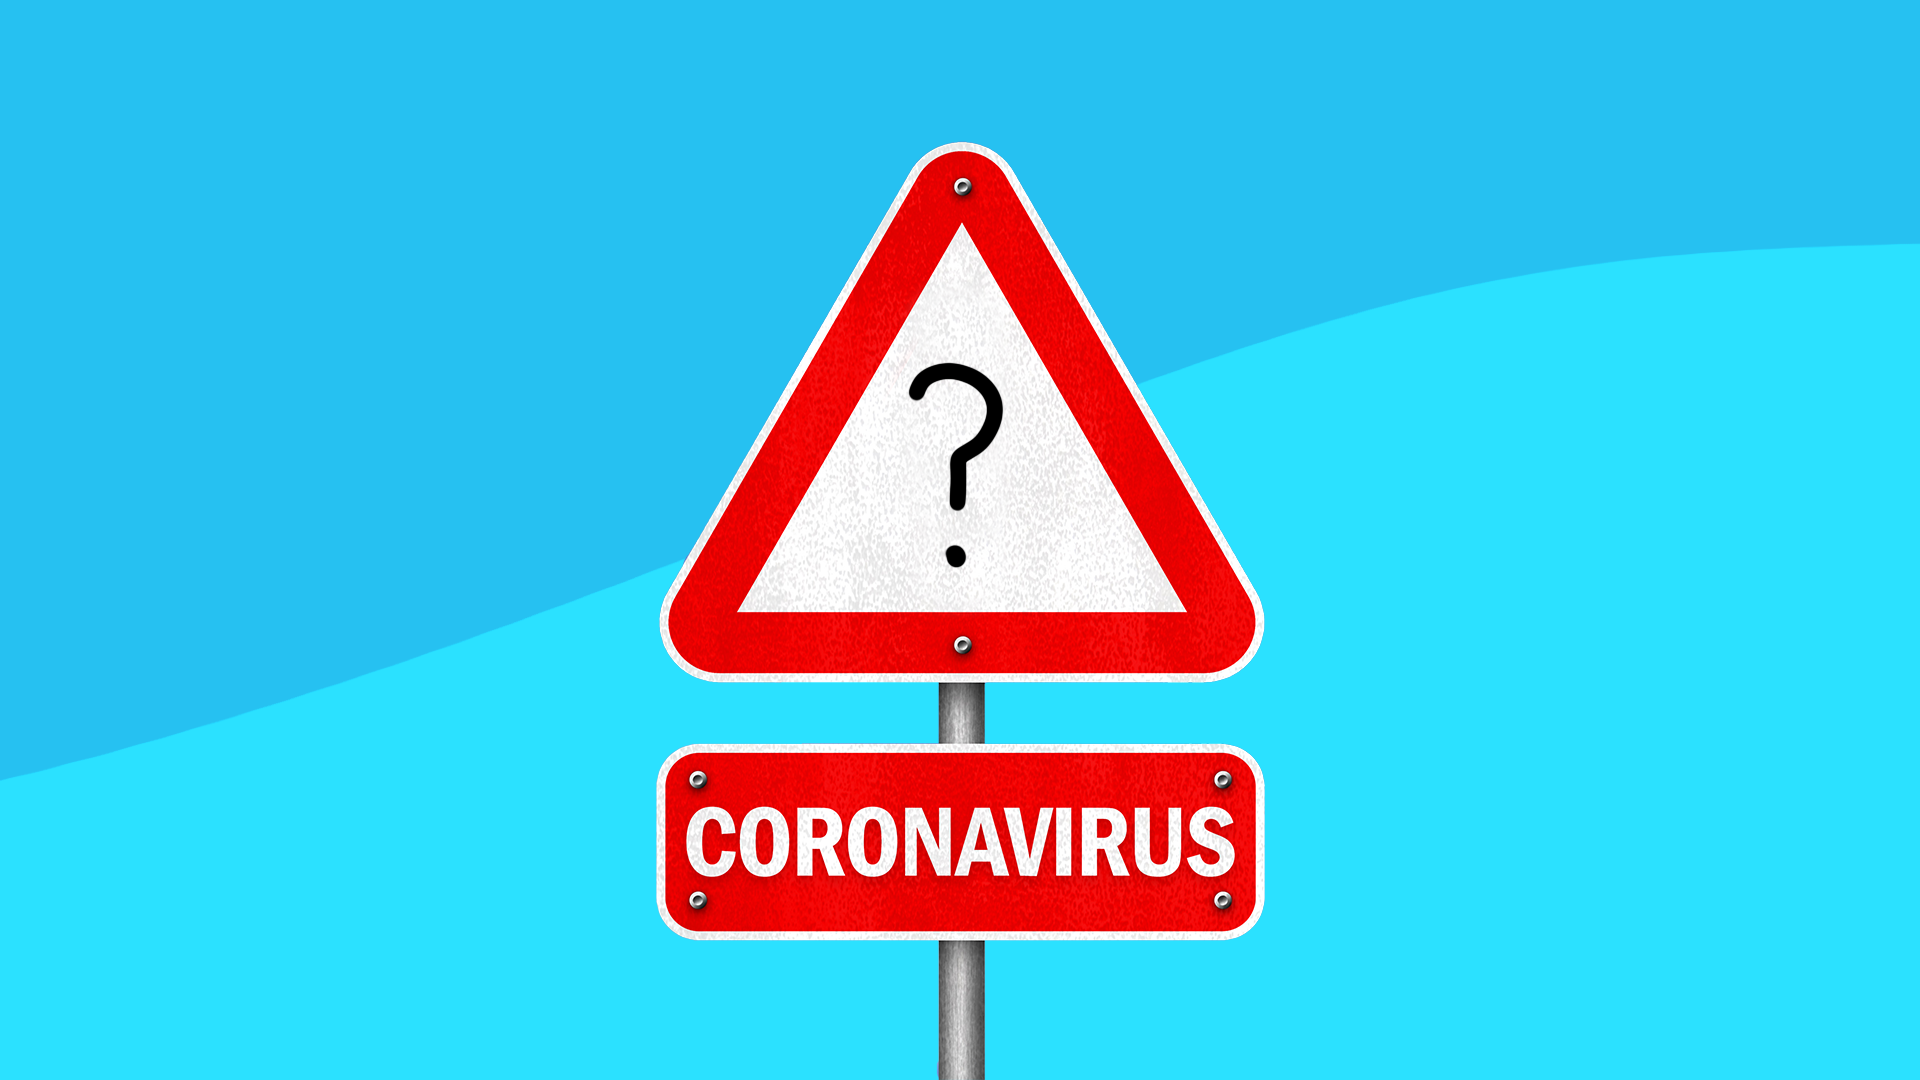 What to do if you think you have coronavirus